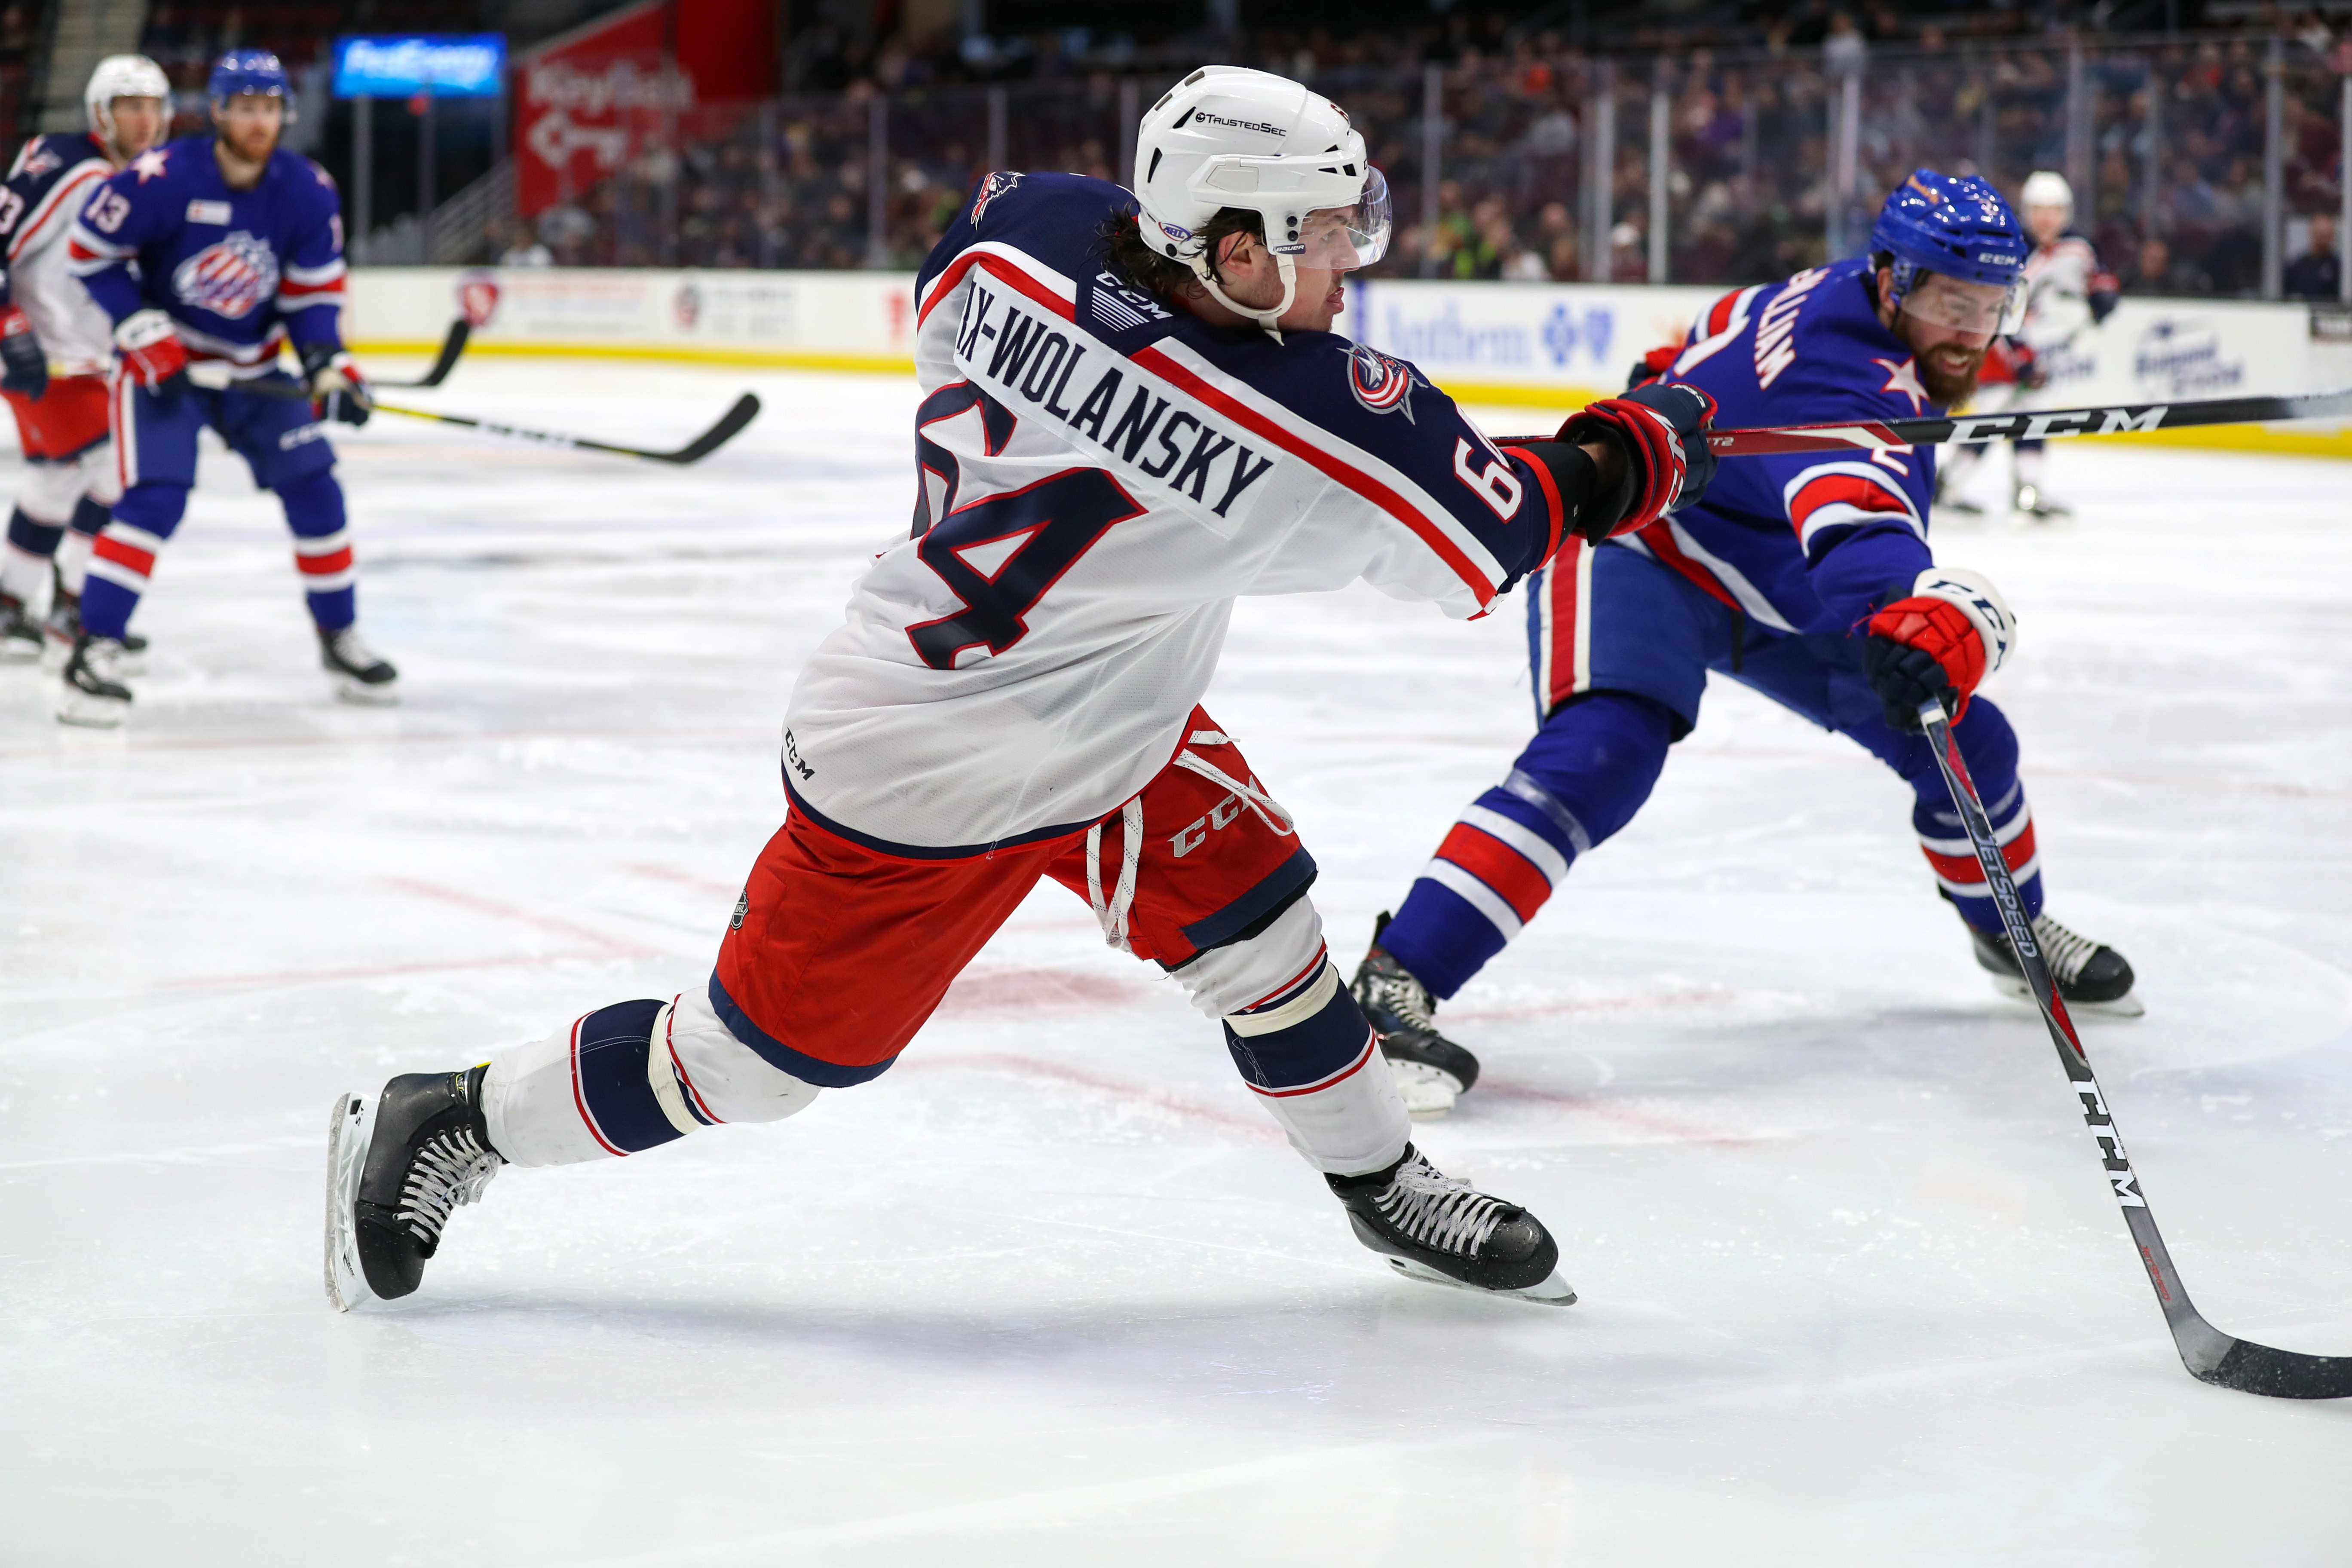 AHL: JAN 22 Rochester Americans at Cleveland Monsters